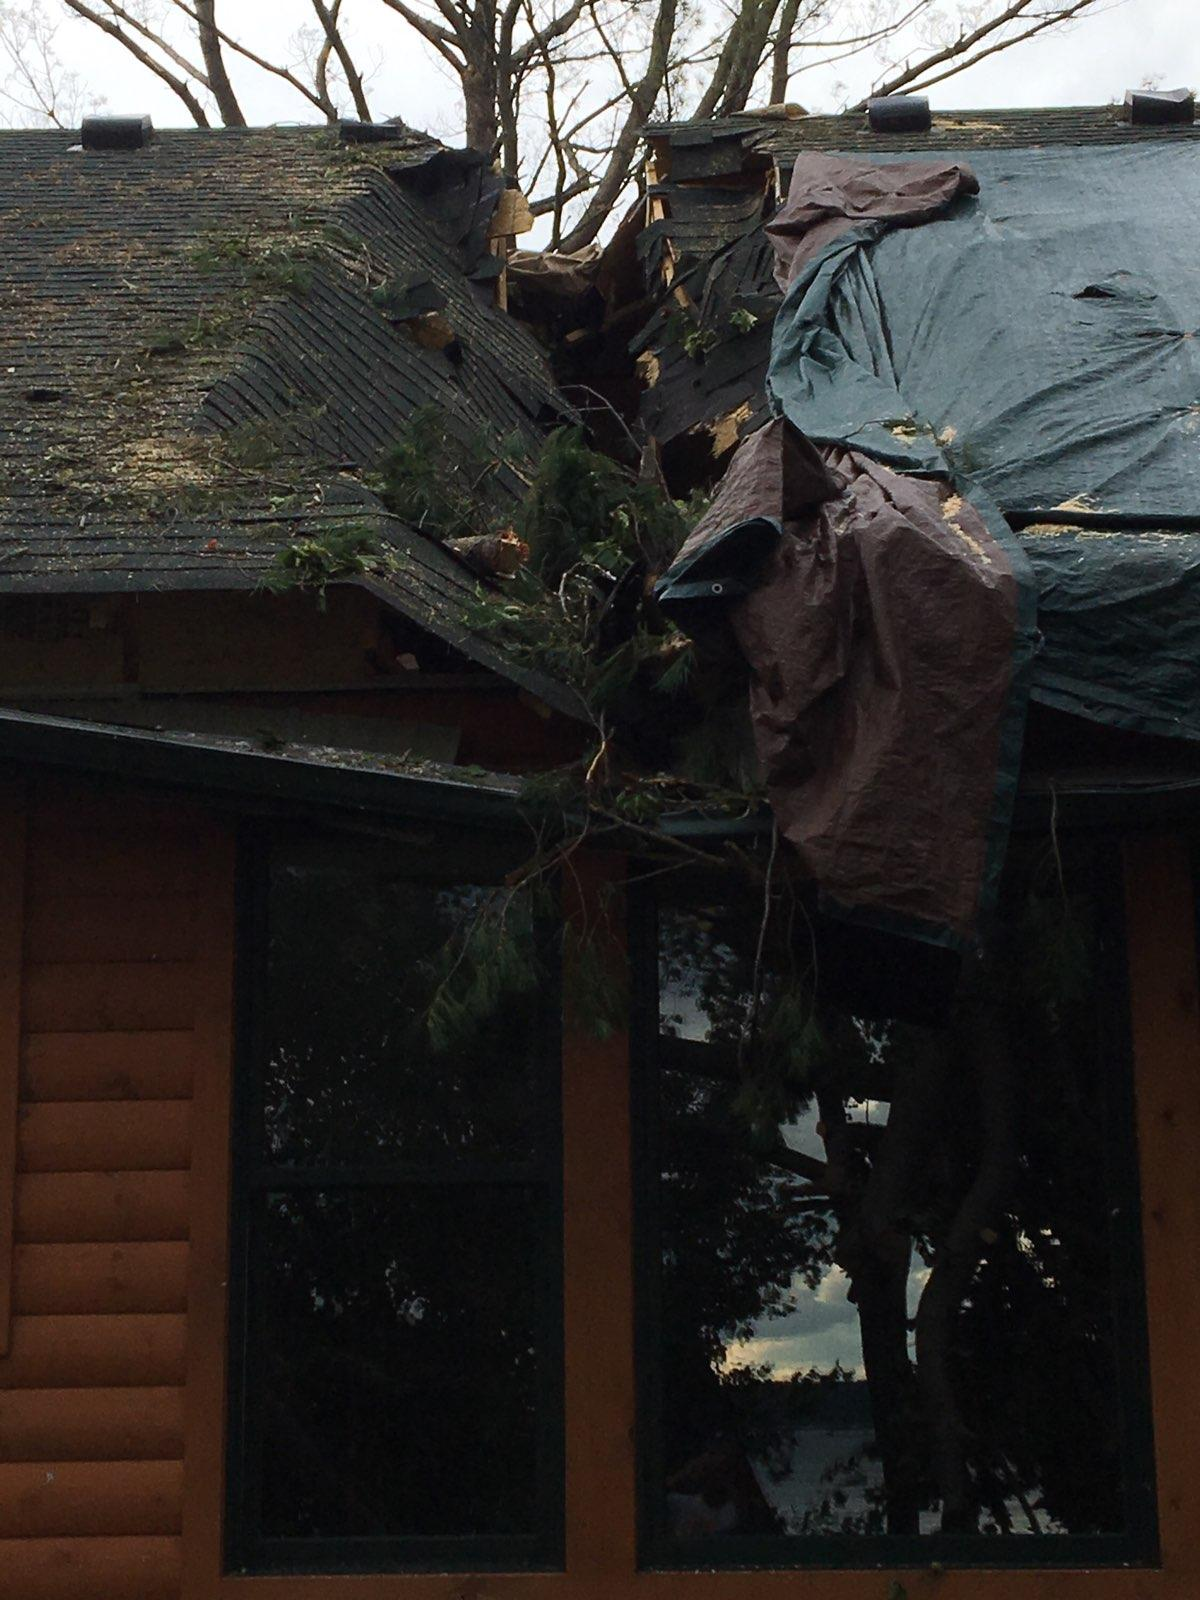 Storm Damage - hole in roof from fallen tree